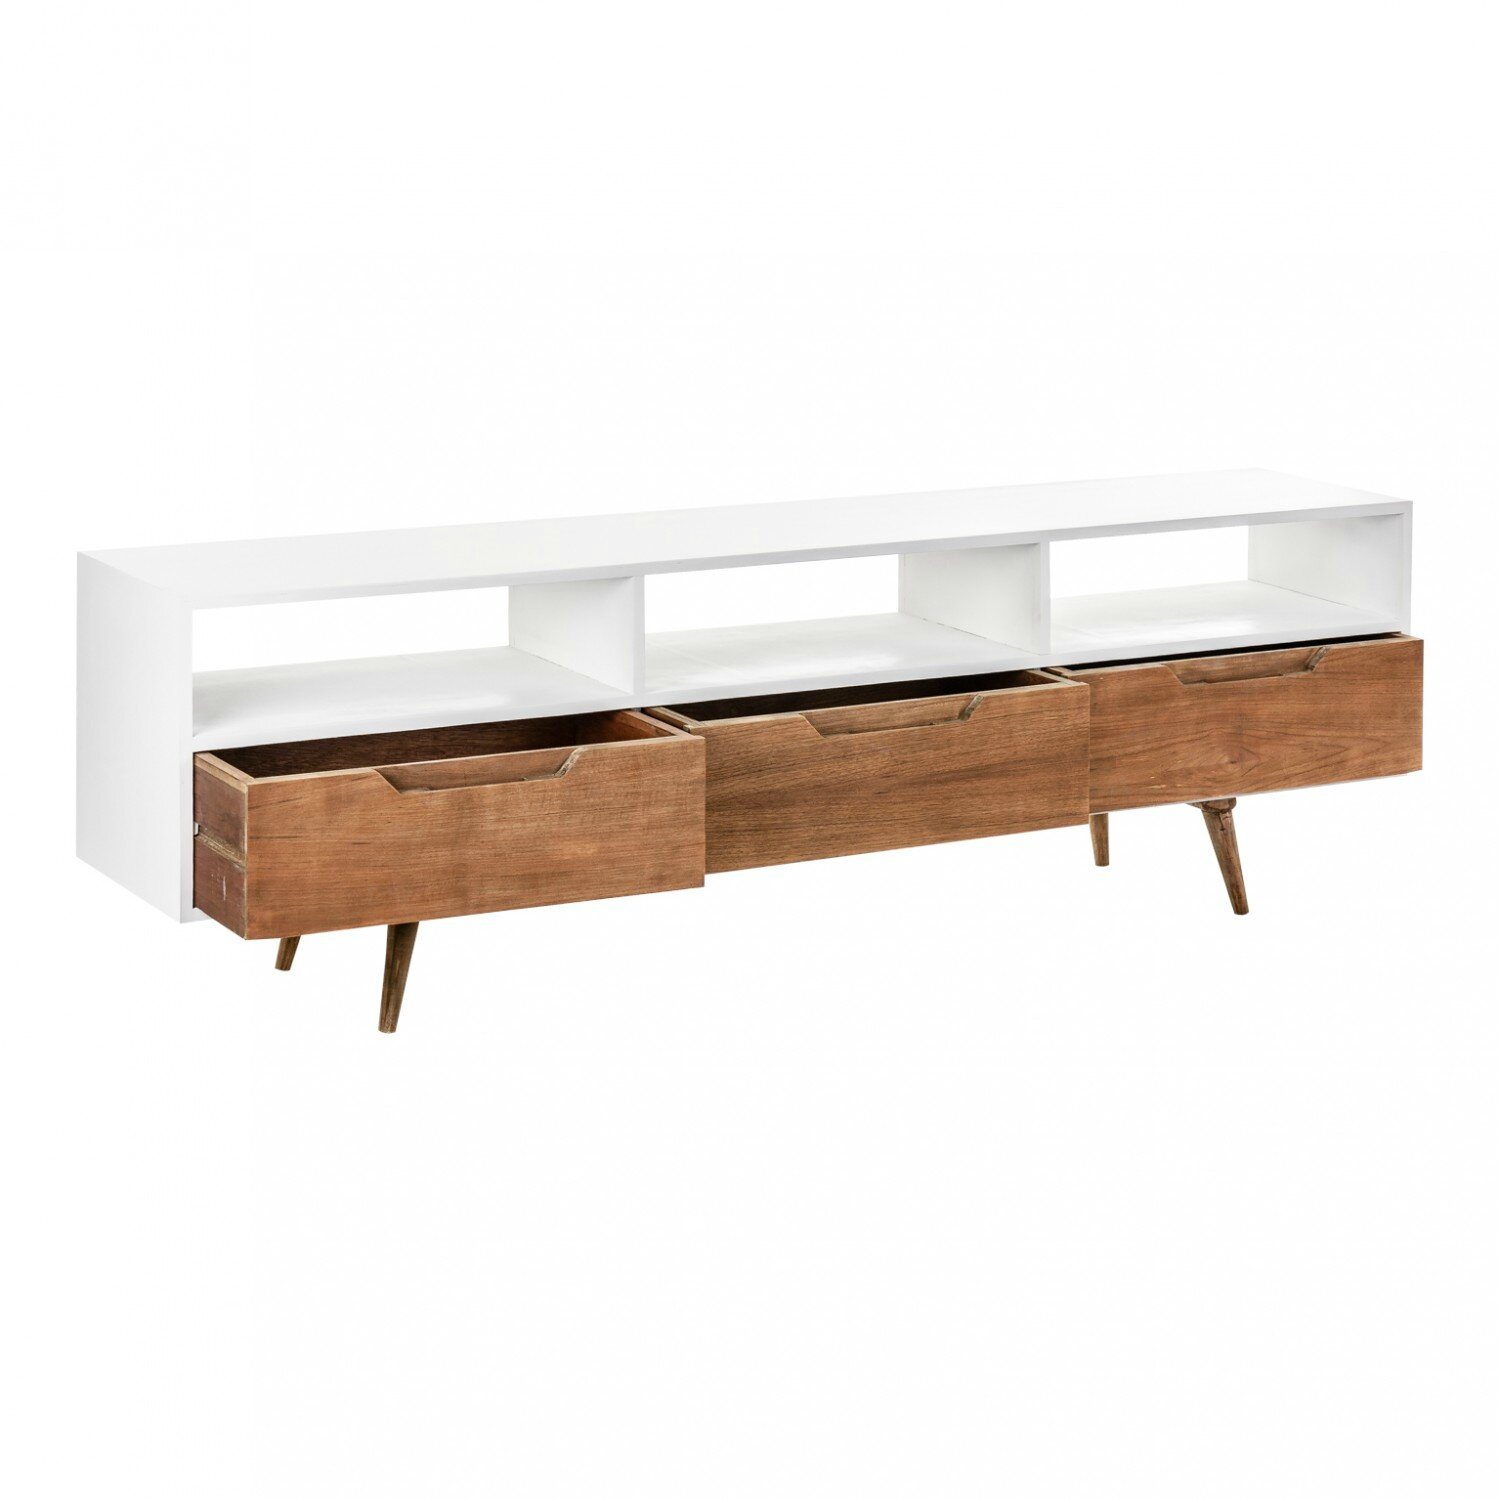 Meuble Tv Cocktail Scandinave Maison Design Bahbe Com # Cdiscount Long Meuble Tv Scandinave